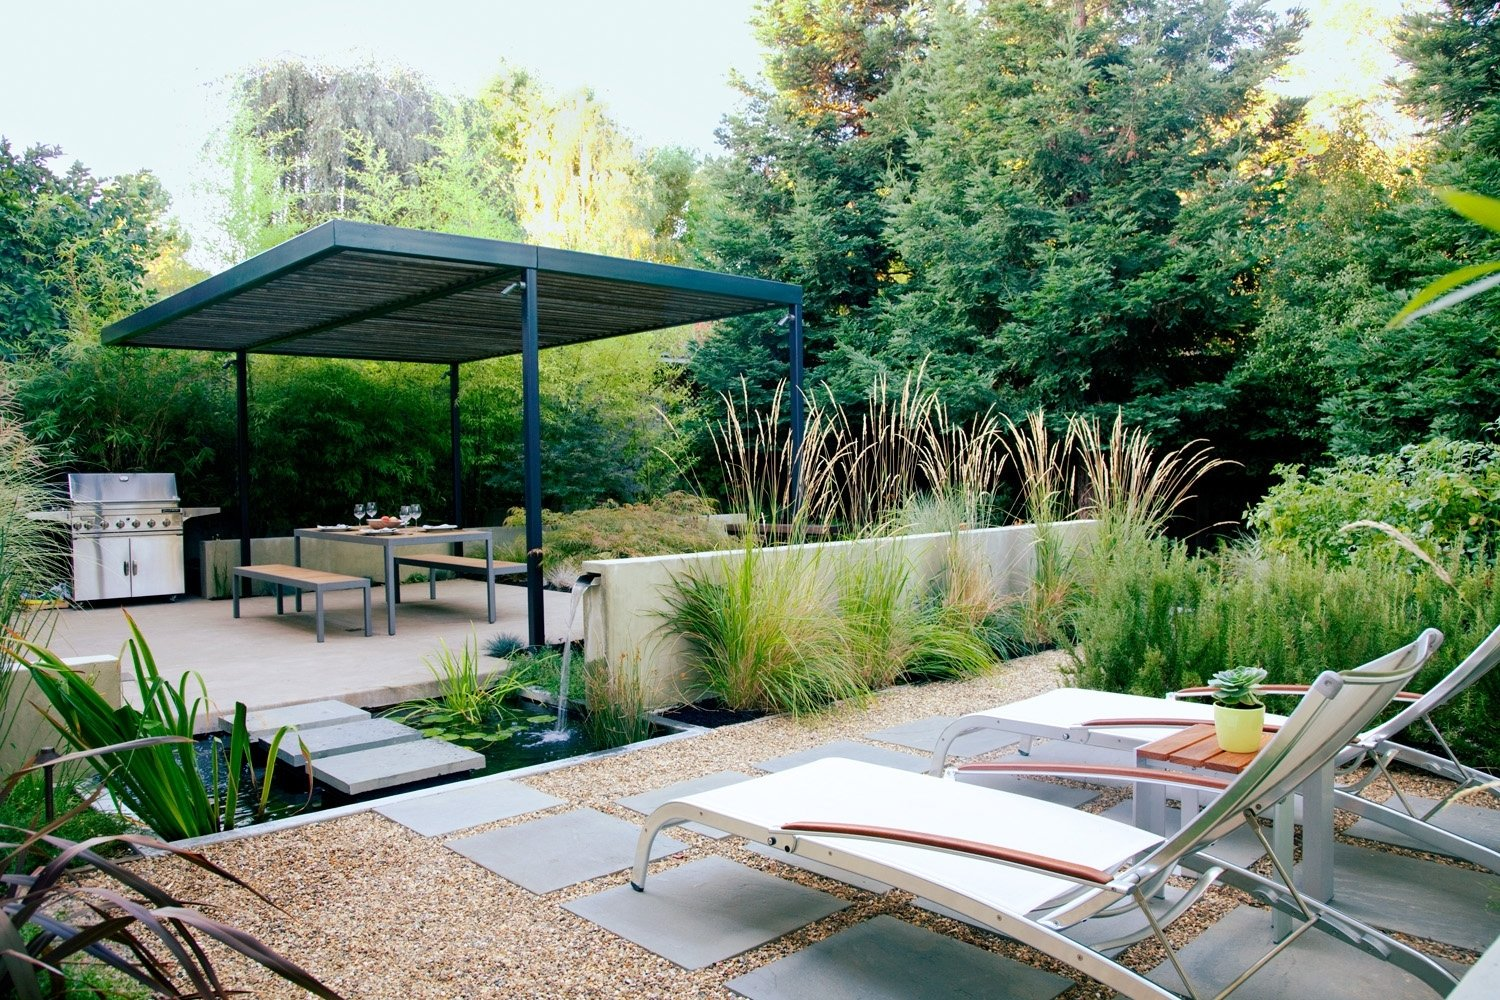 10 Wonderful Ideas For A Small Backyard how to create 4 outdoor rooms in a small backyard sunset magazine